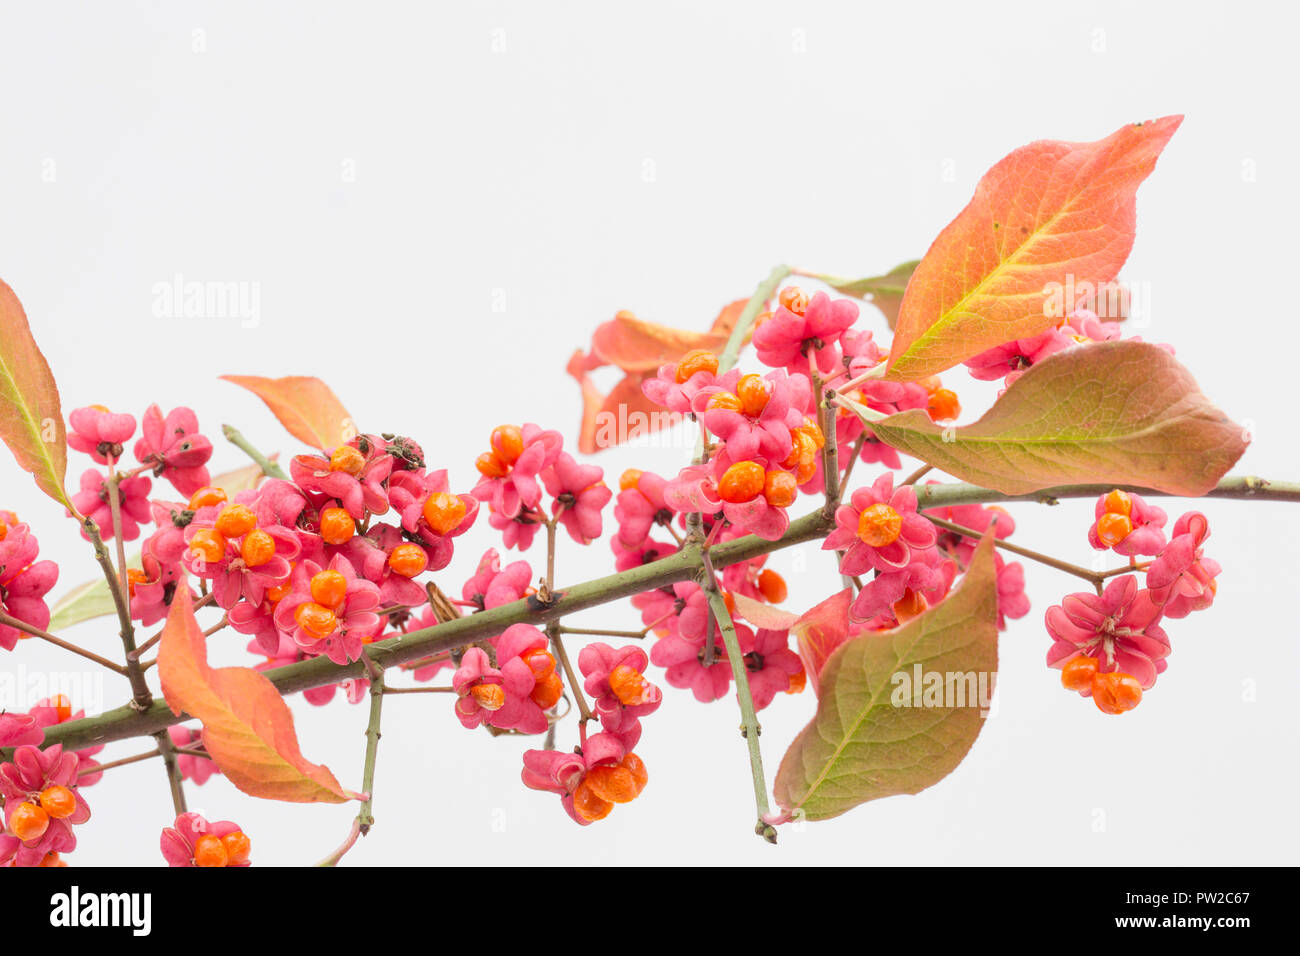 Fruit and seeds of the Spindle tree, Euonymus europaeus, photographed in a studio on a white background. North Dorset England UK GB. - Stock Image